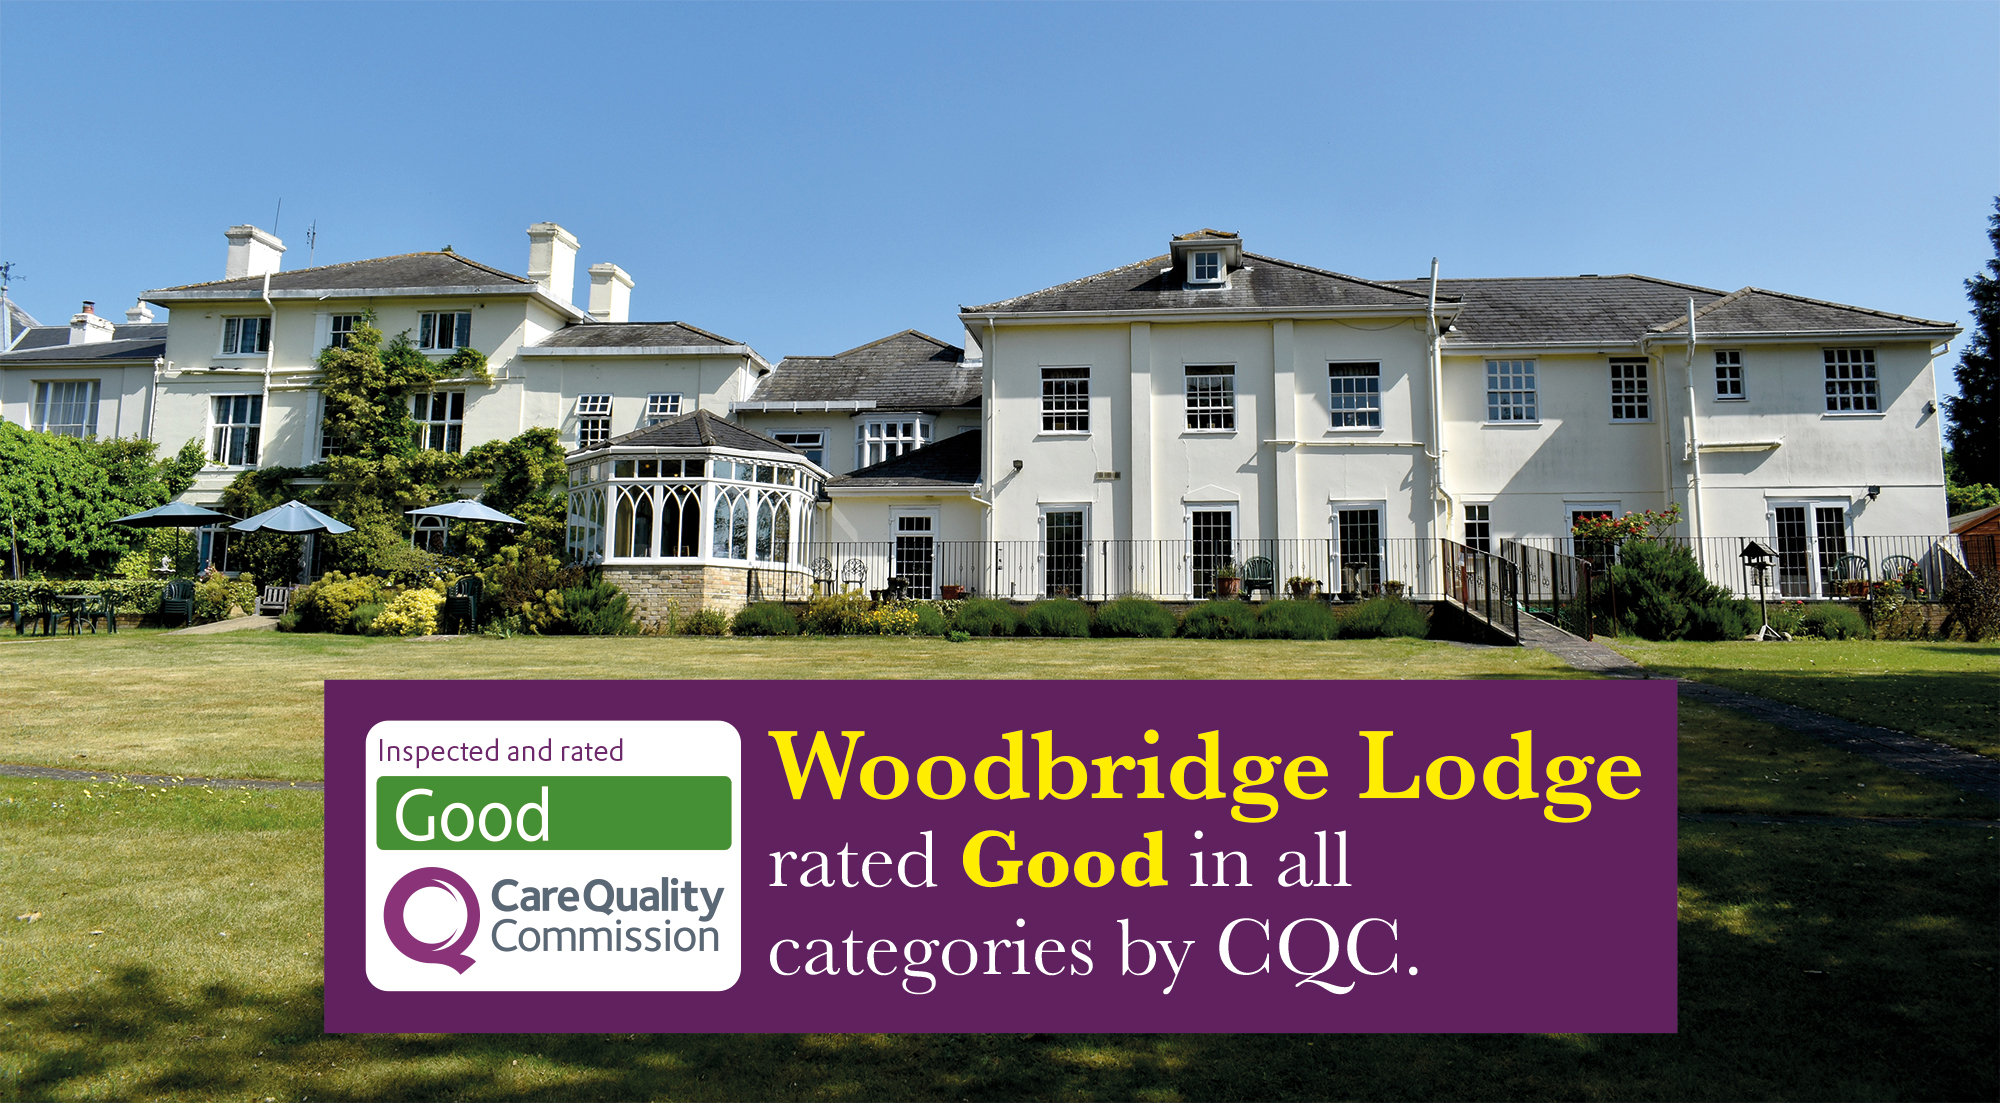 Woodbridge Lodge staff proud of Good CQC report